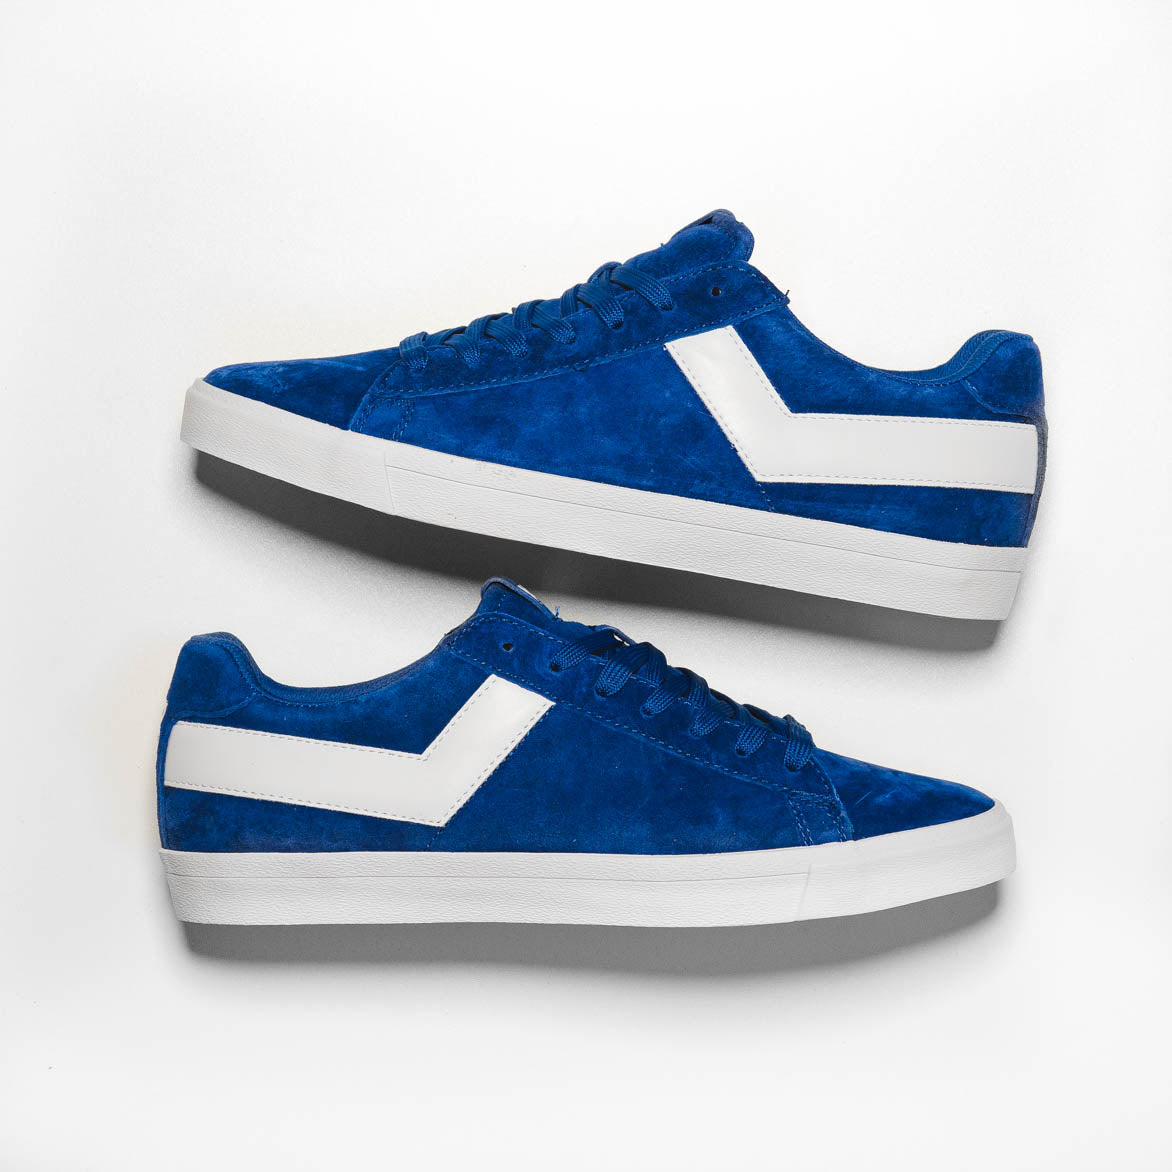 TOPSTAR SUEDE LOW - ROYAL